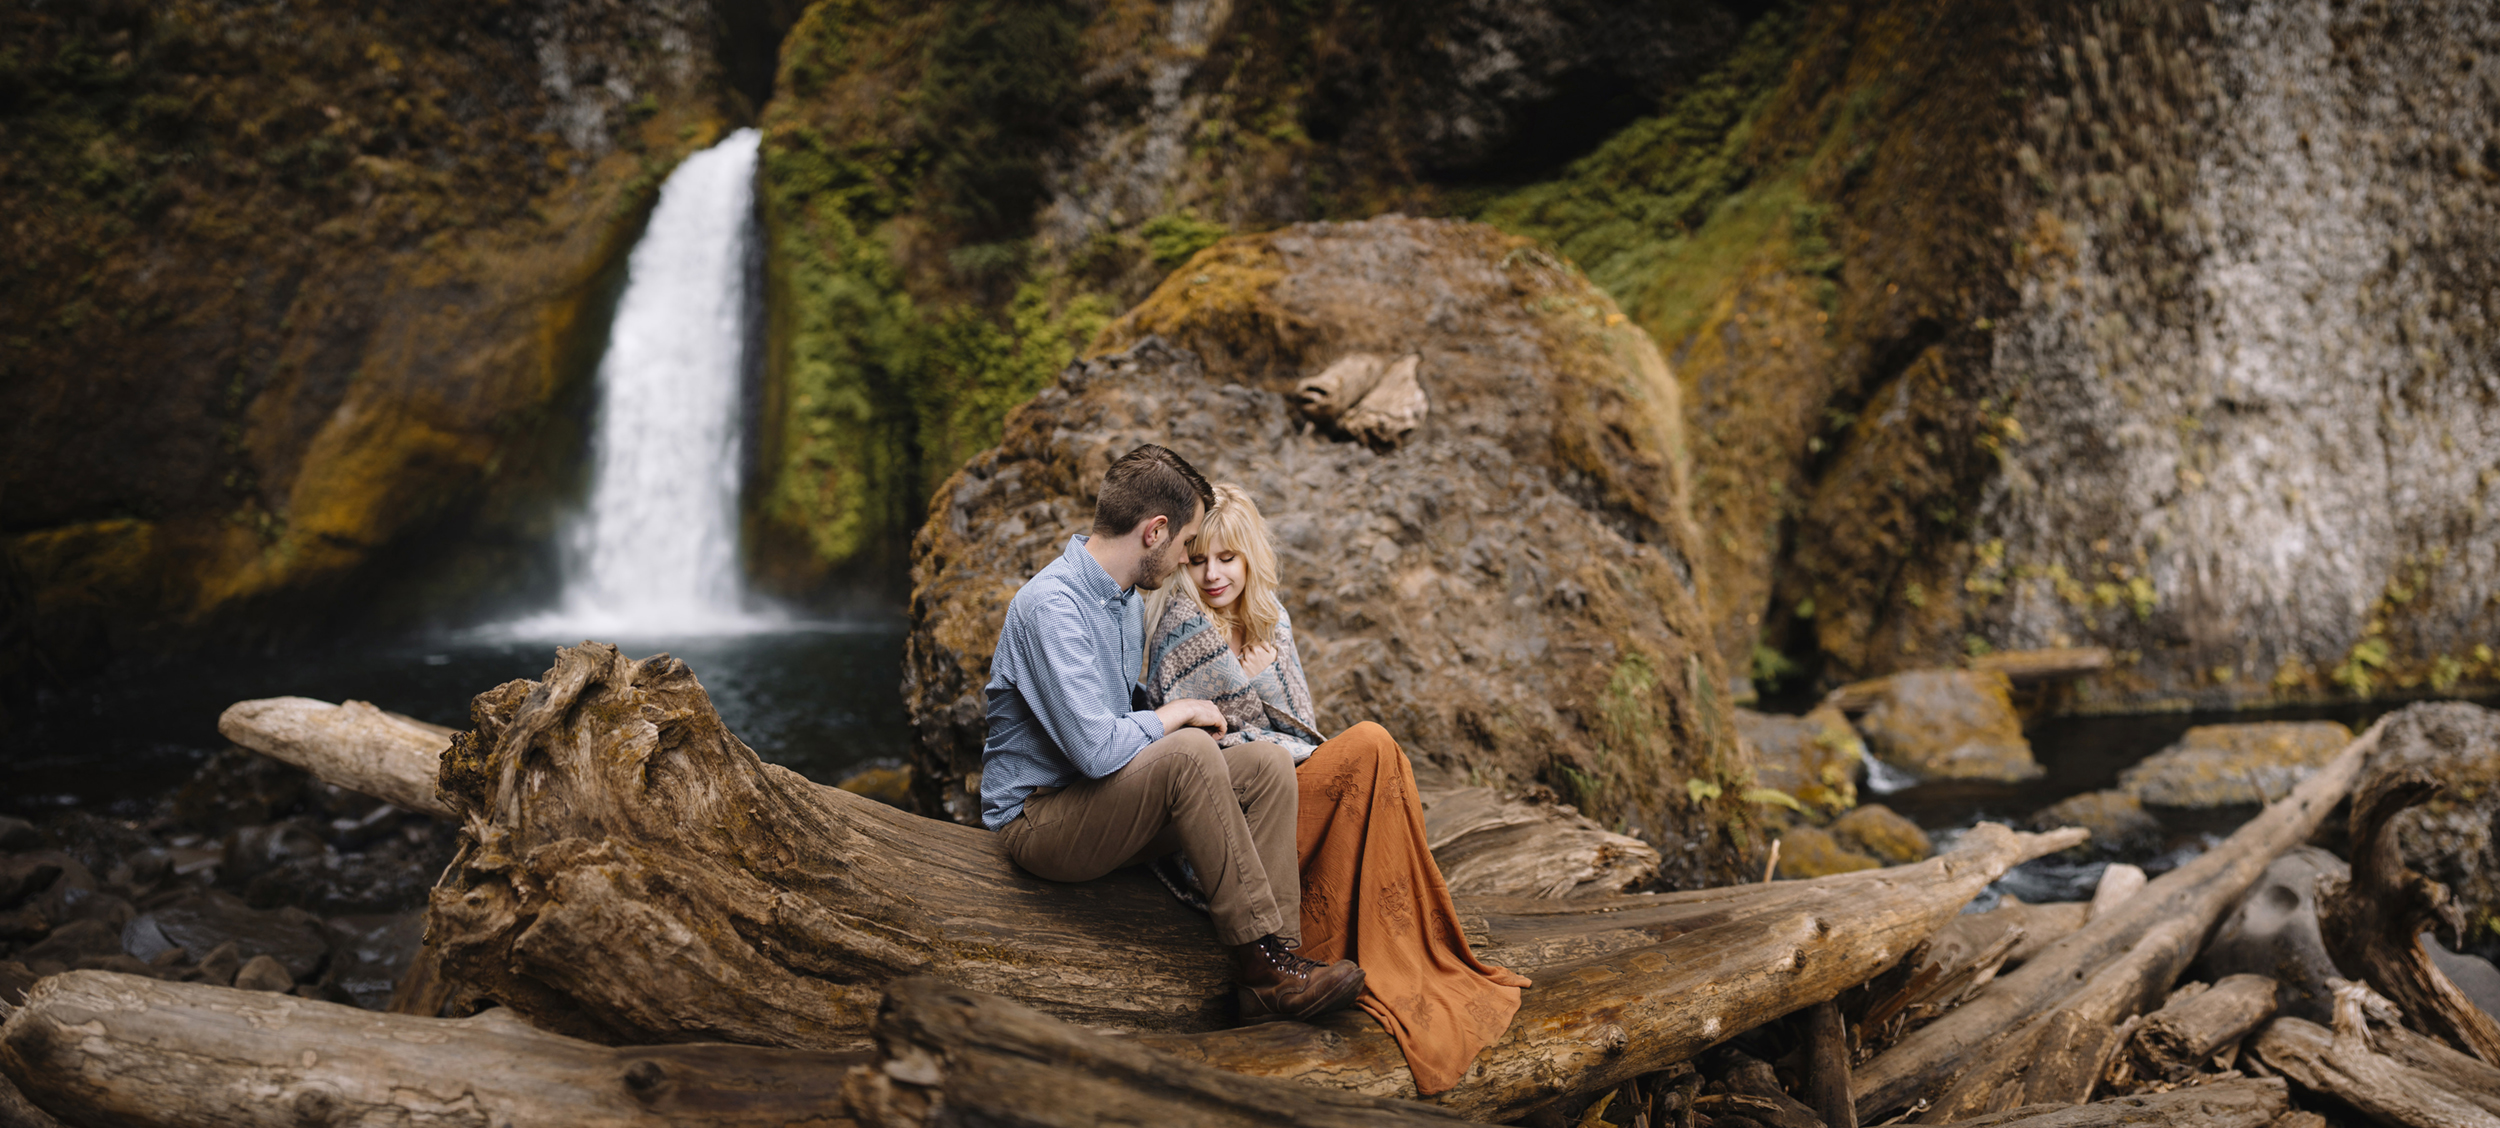 Columbia River Gorge Oregon Adventure Couples Photographer 180.jpg